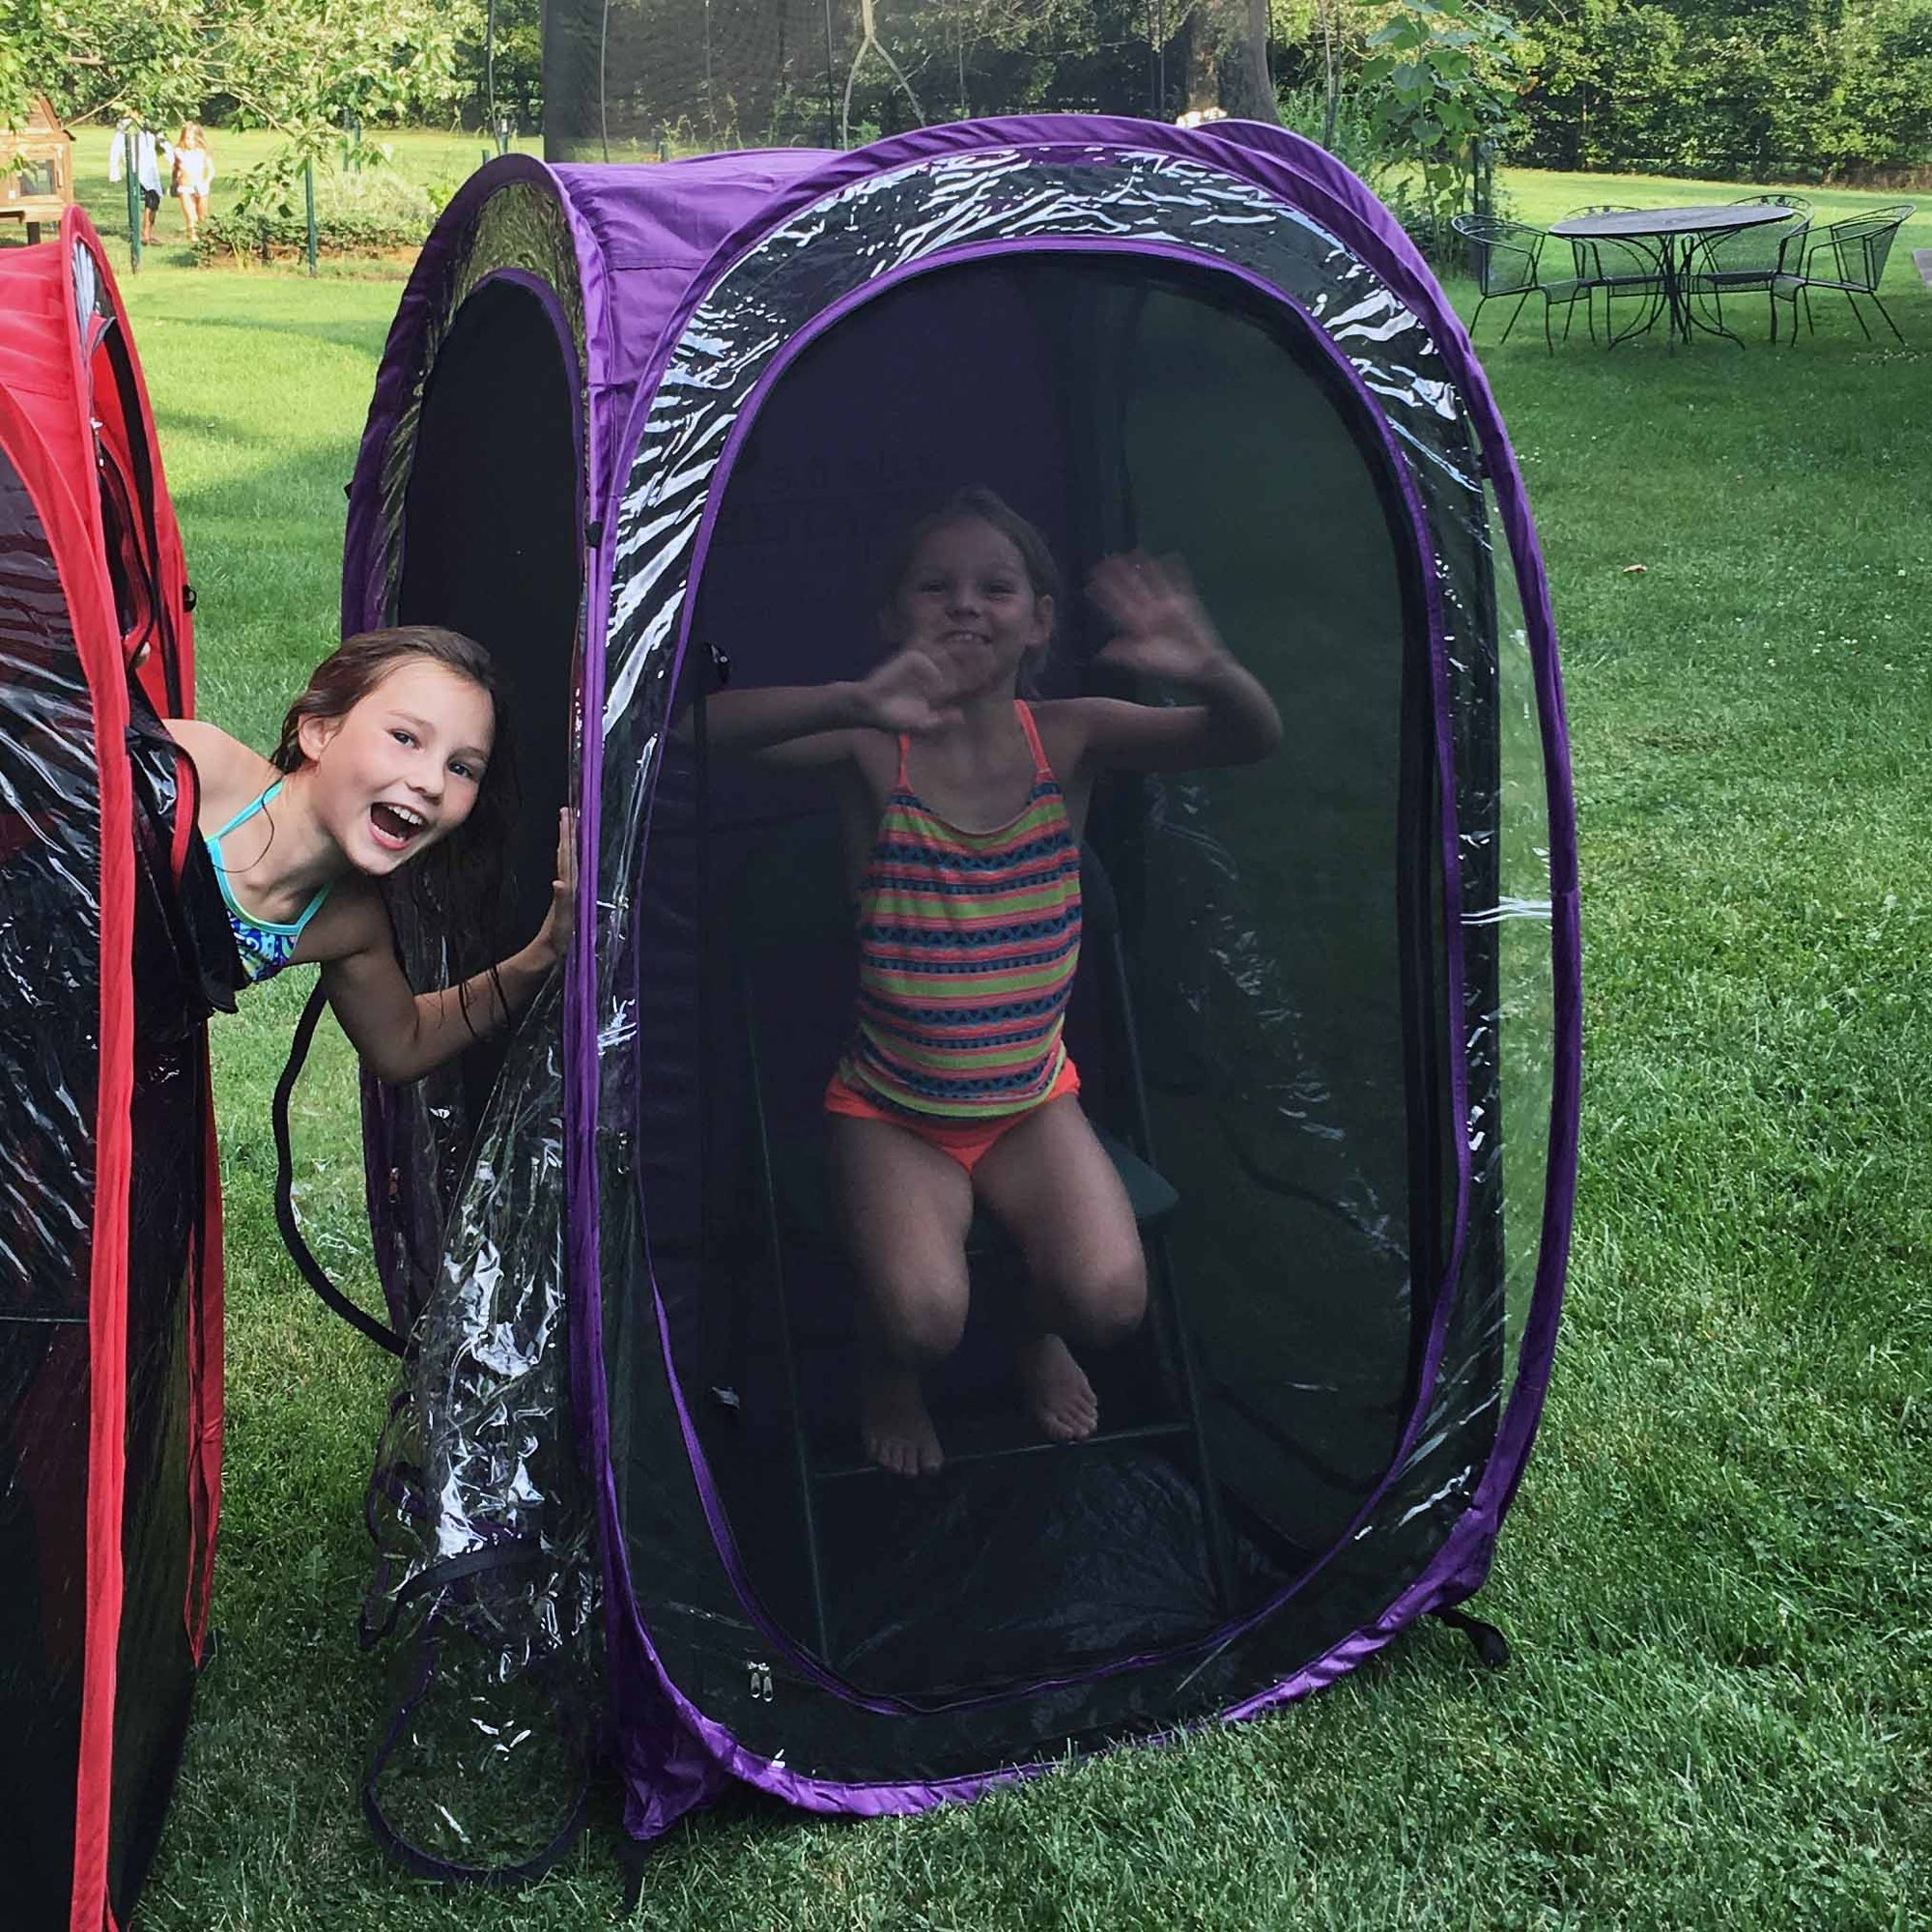 MyPod Screen Insert - Under the Weather® - Personal pop-up sports tent for mom, dad, kids, parents - Perfect for soccer, baseball, softball, football, youth team sports - As Seen on Shark Tank